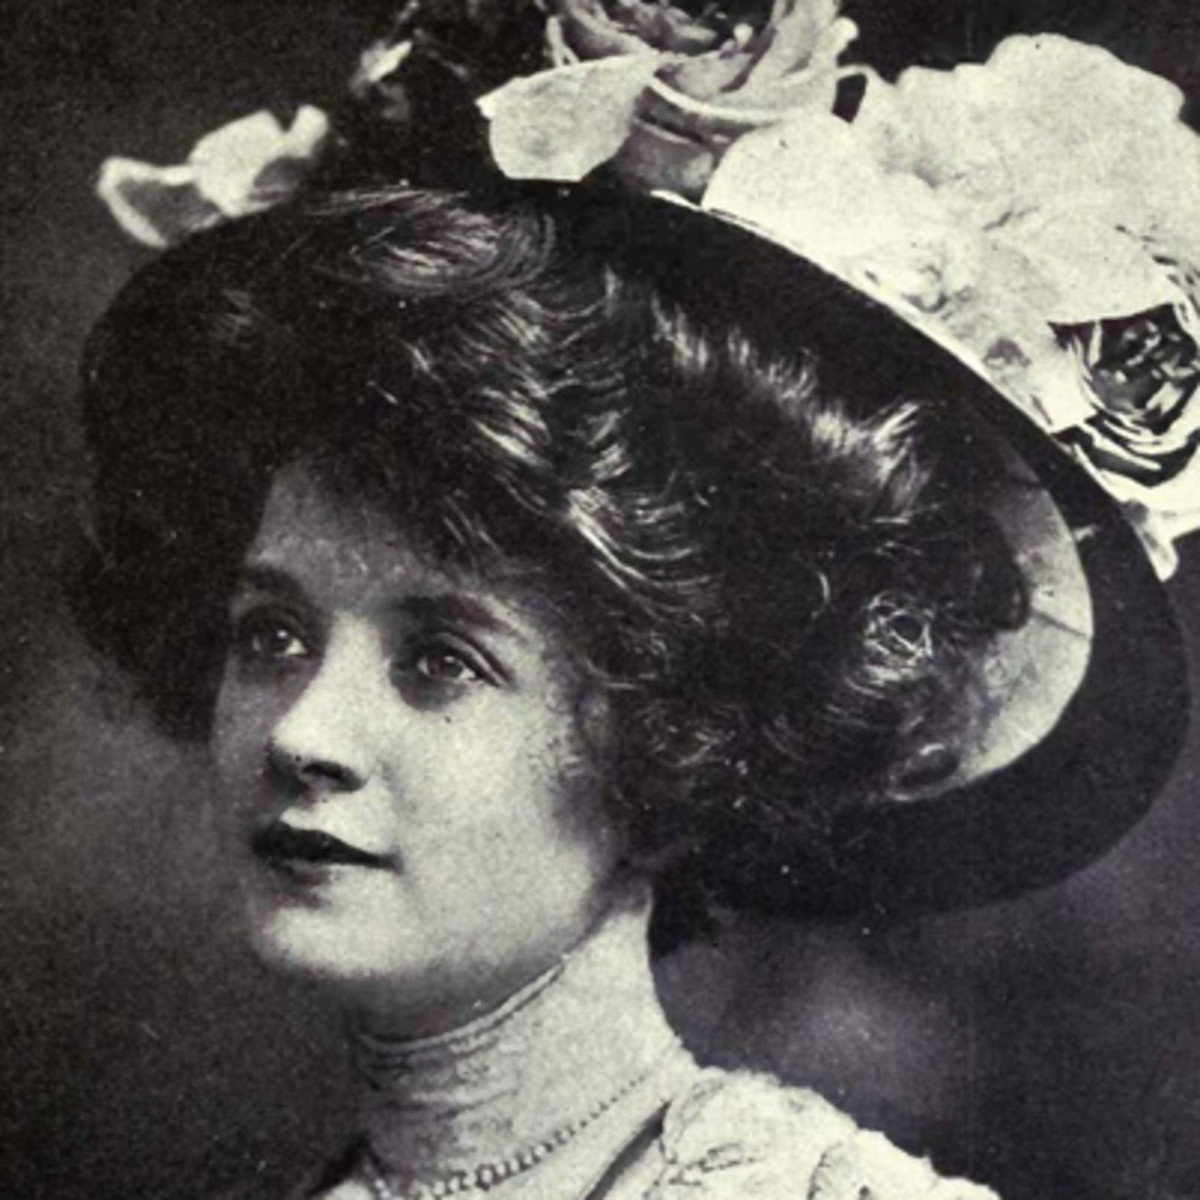 billie burke find a gravebillie burke actress, billie burke, billie burke actor, billie burke imdb, billie burke biography, billie burke wizard of oz, billie burke zoo, billie burke grave, billie burke weight loss, billie burke mortgage, billie burke and florenz ziegfeld, billie burke net worth, billie burke family tree, billie burke quotes, billie burke images, billie burke edmond ok, billie burke find a grave, billie burke's daughter